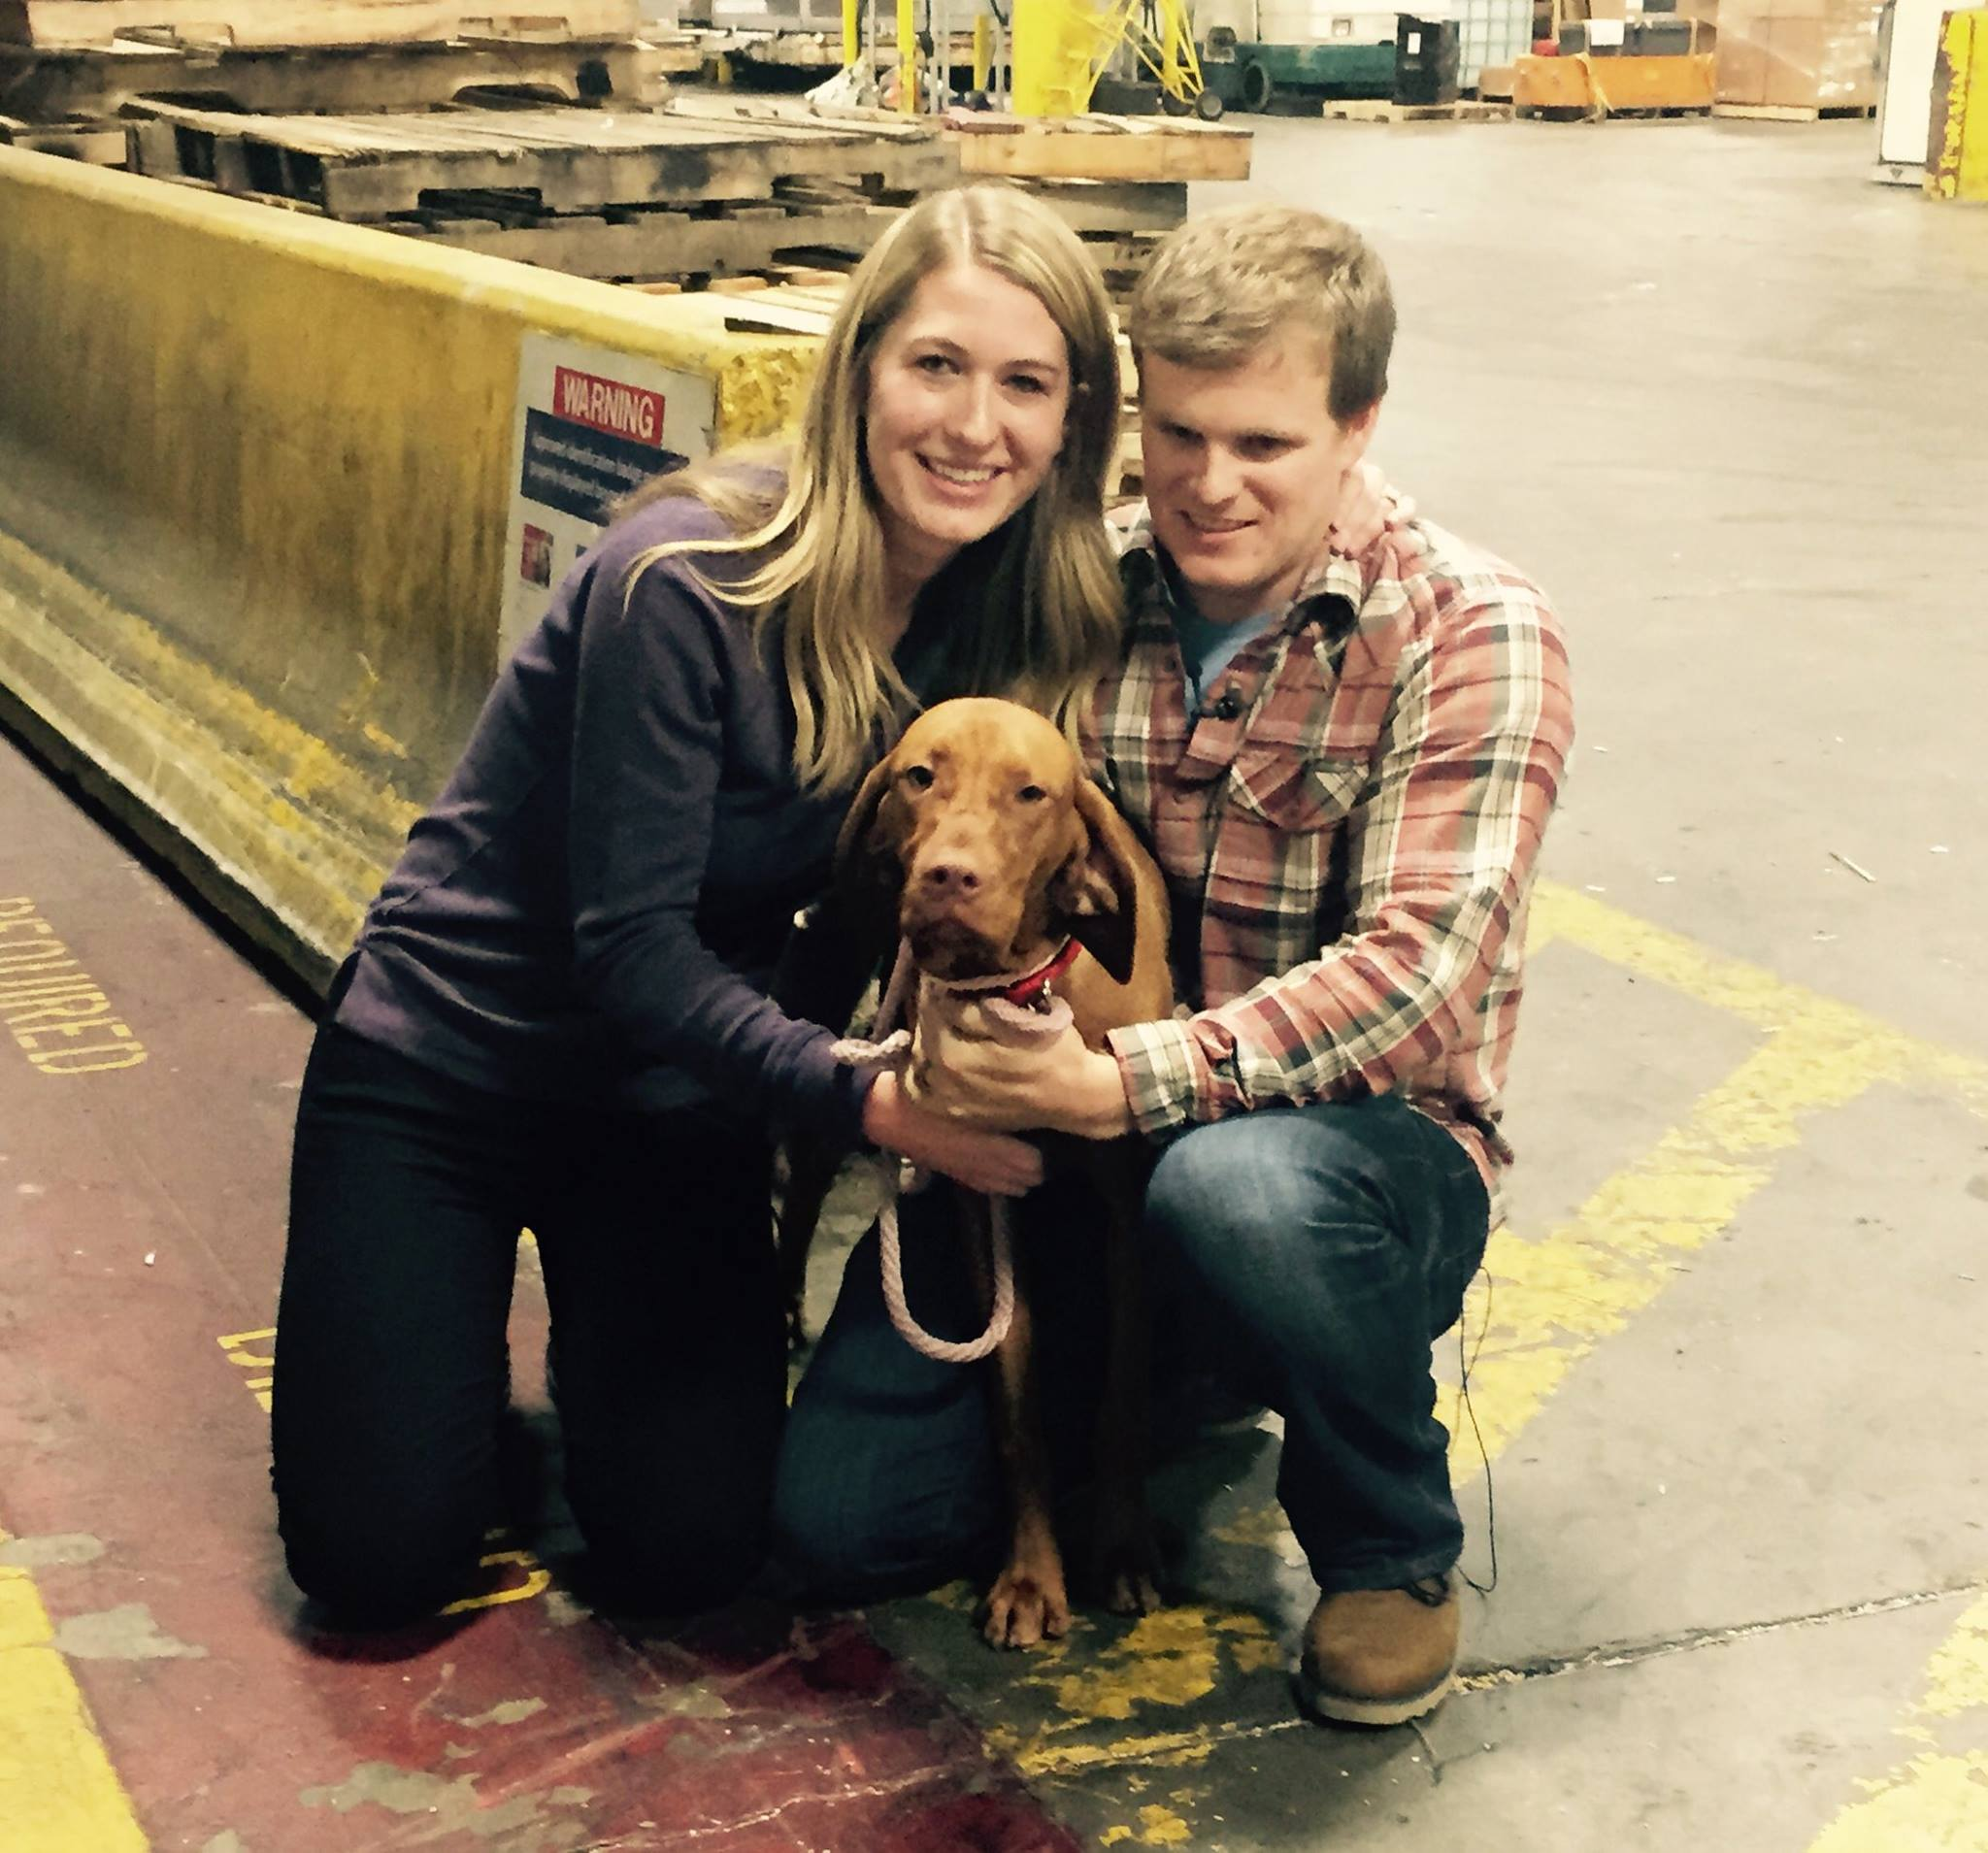 Lost dog home to Seattle owners after cross-country trip